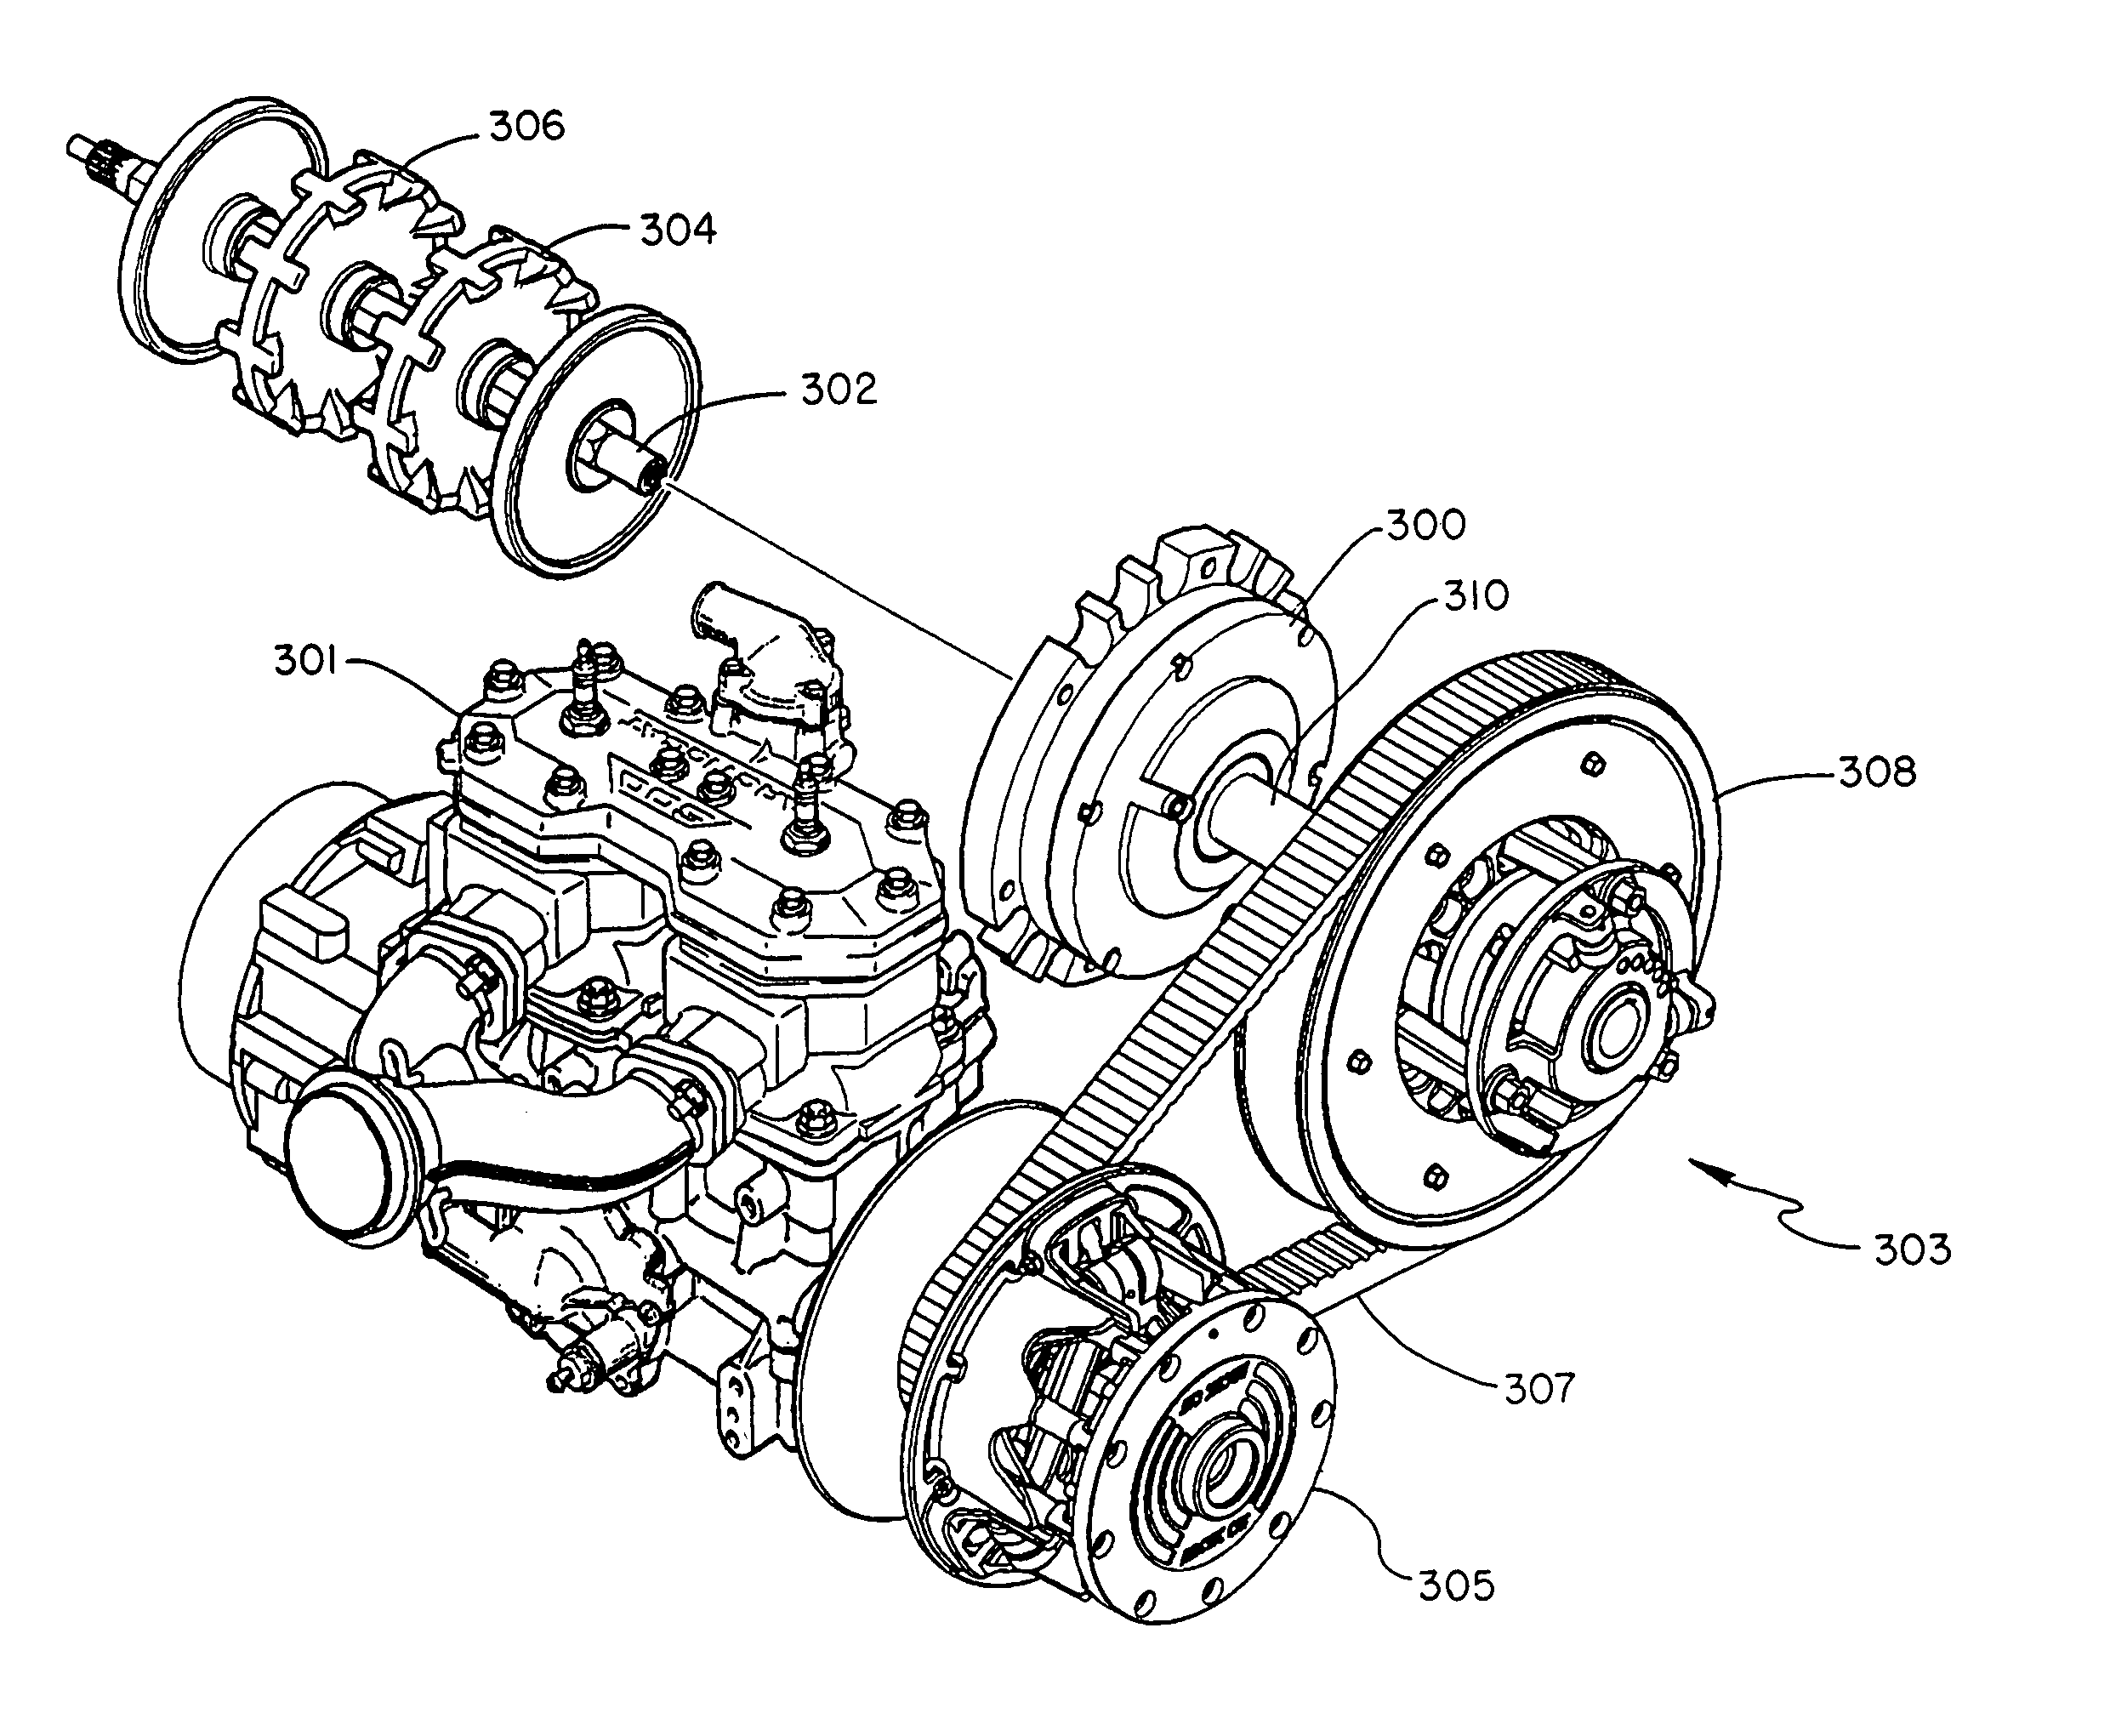 Patent Us7063639 - Snowmobile Planetary Drive System